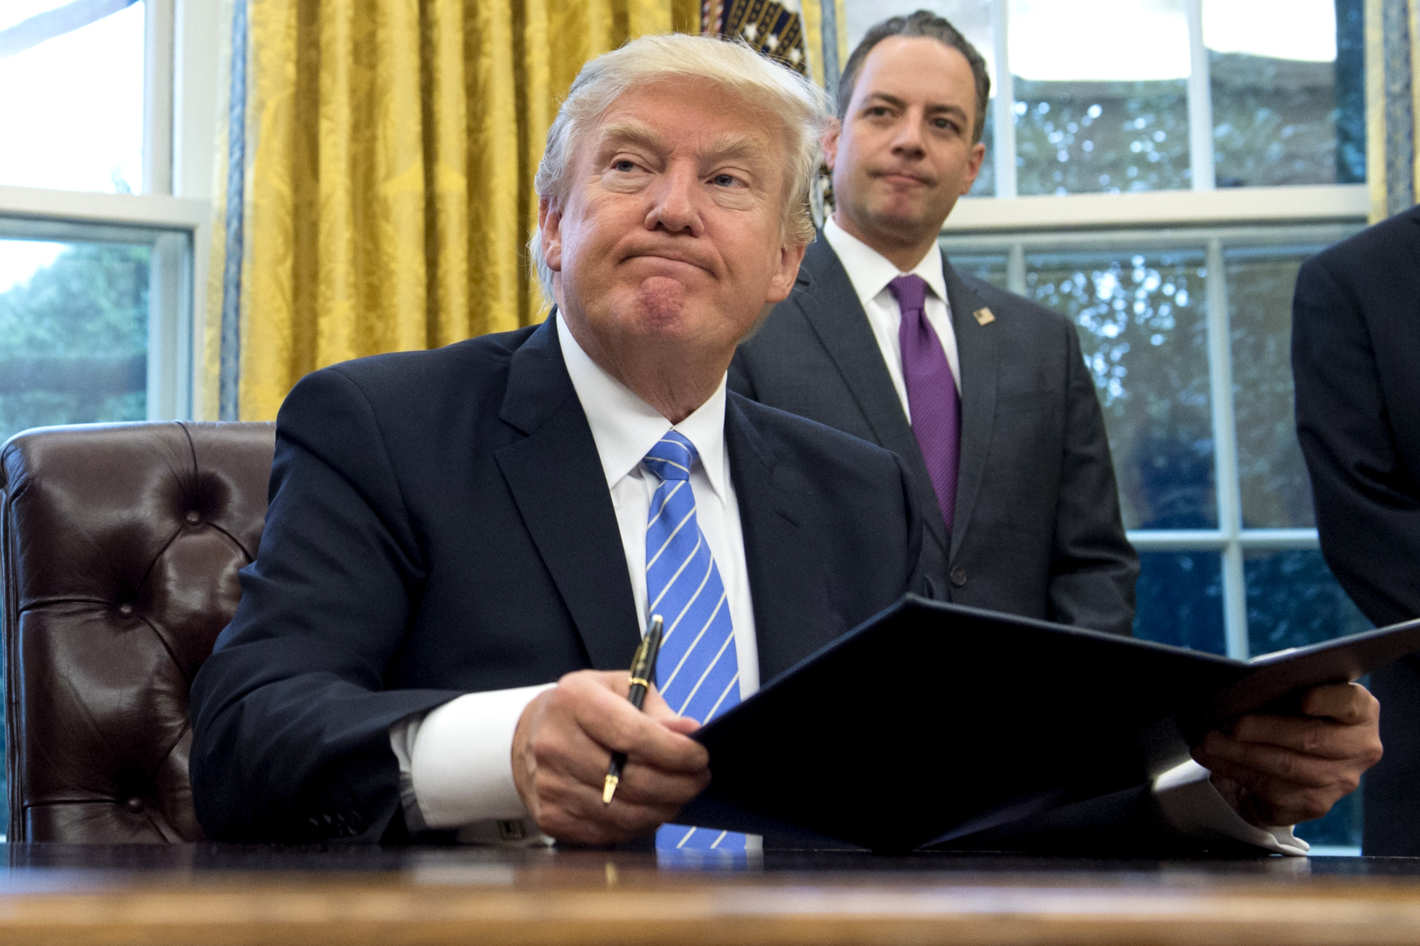 Immigration update: Updated executive order on travel ban signed